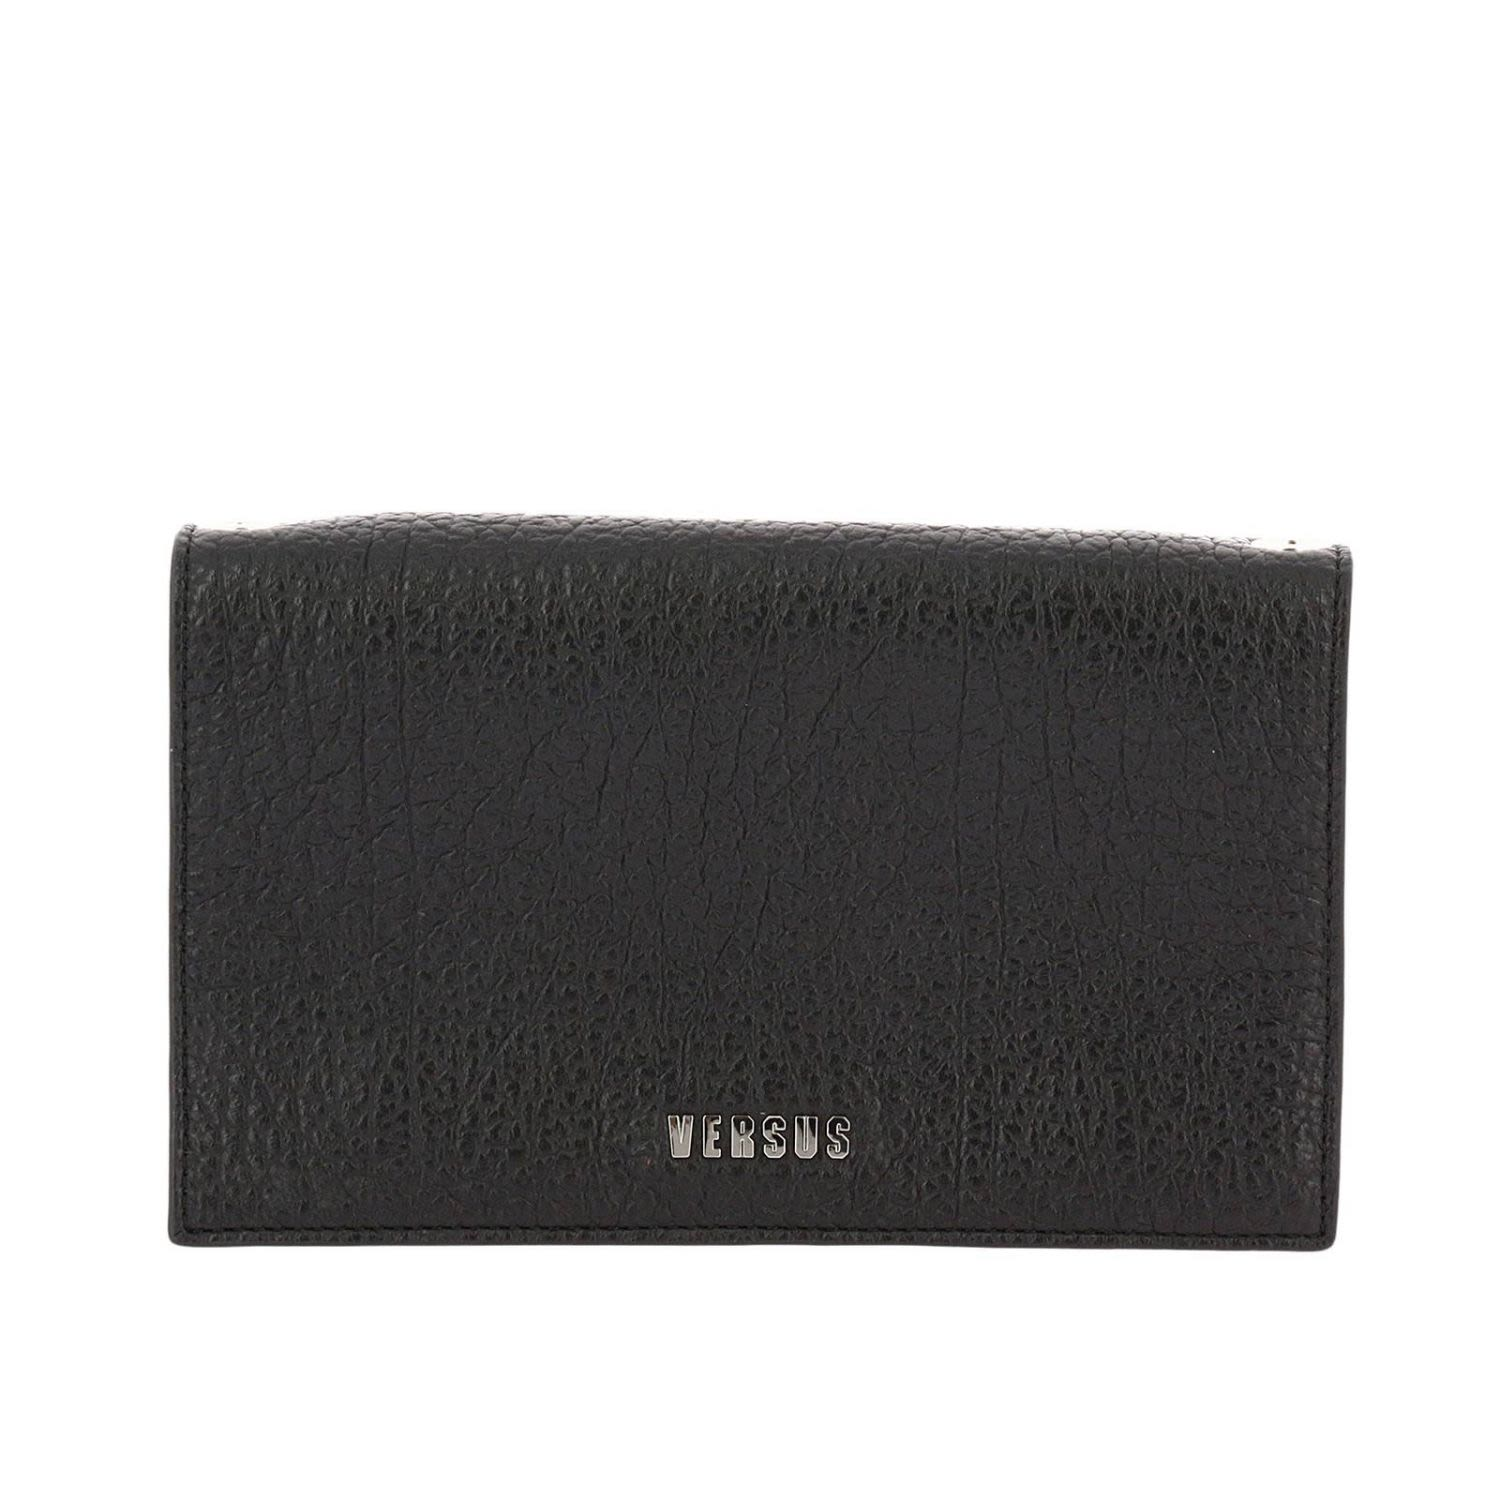 textured logo shoulder bag - Black Versus